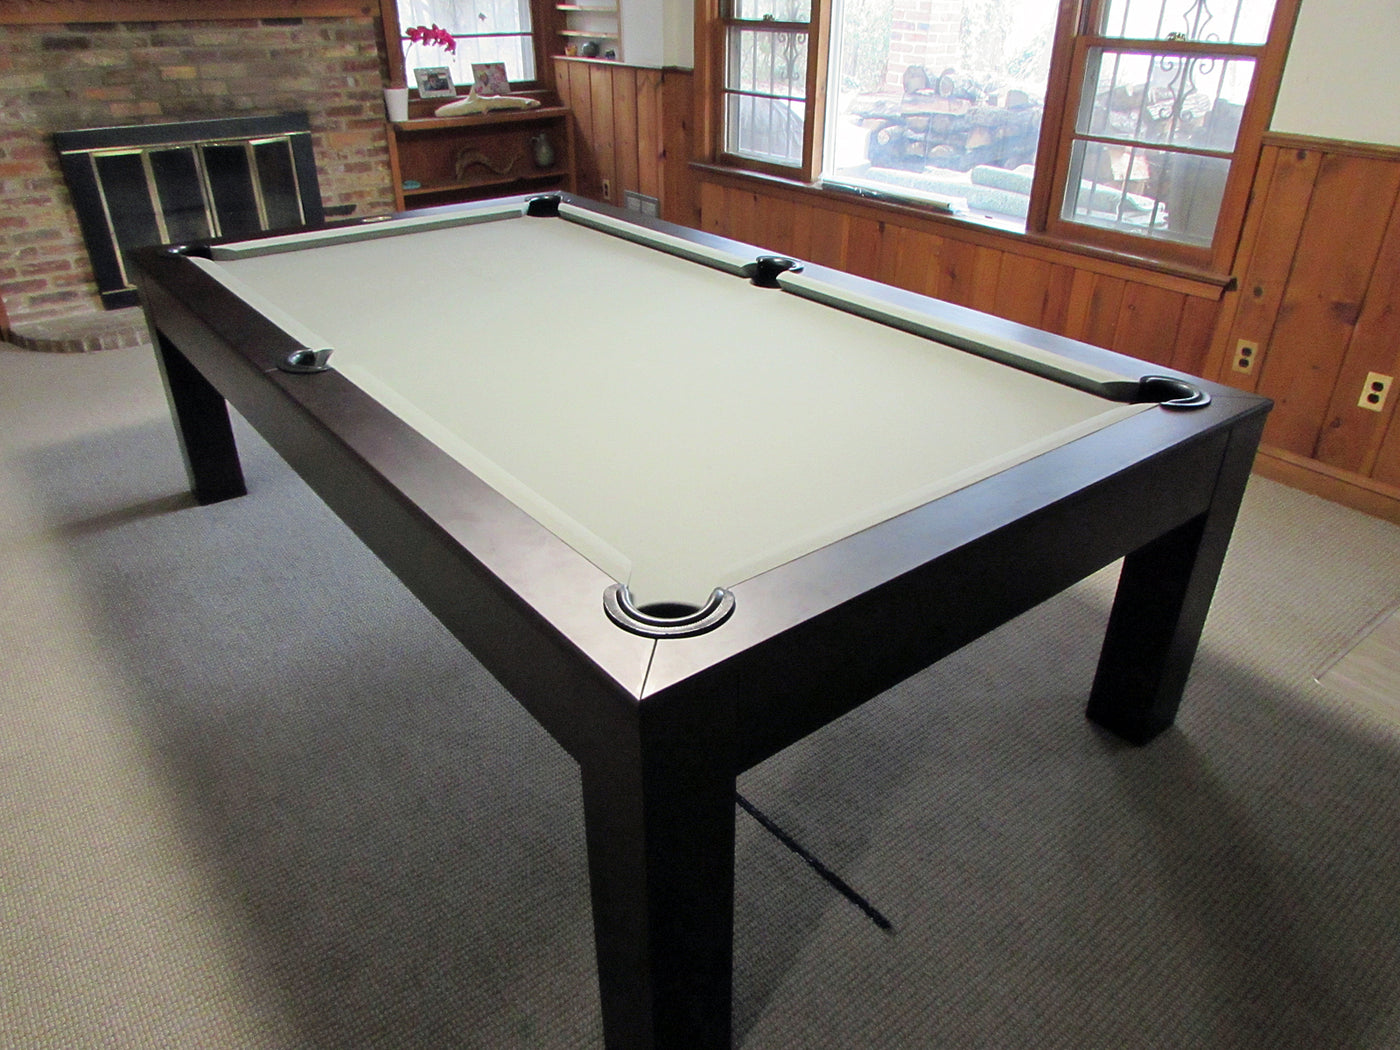 Robbies billiards modern dining pool table for How to build a billiard table